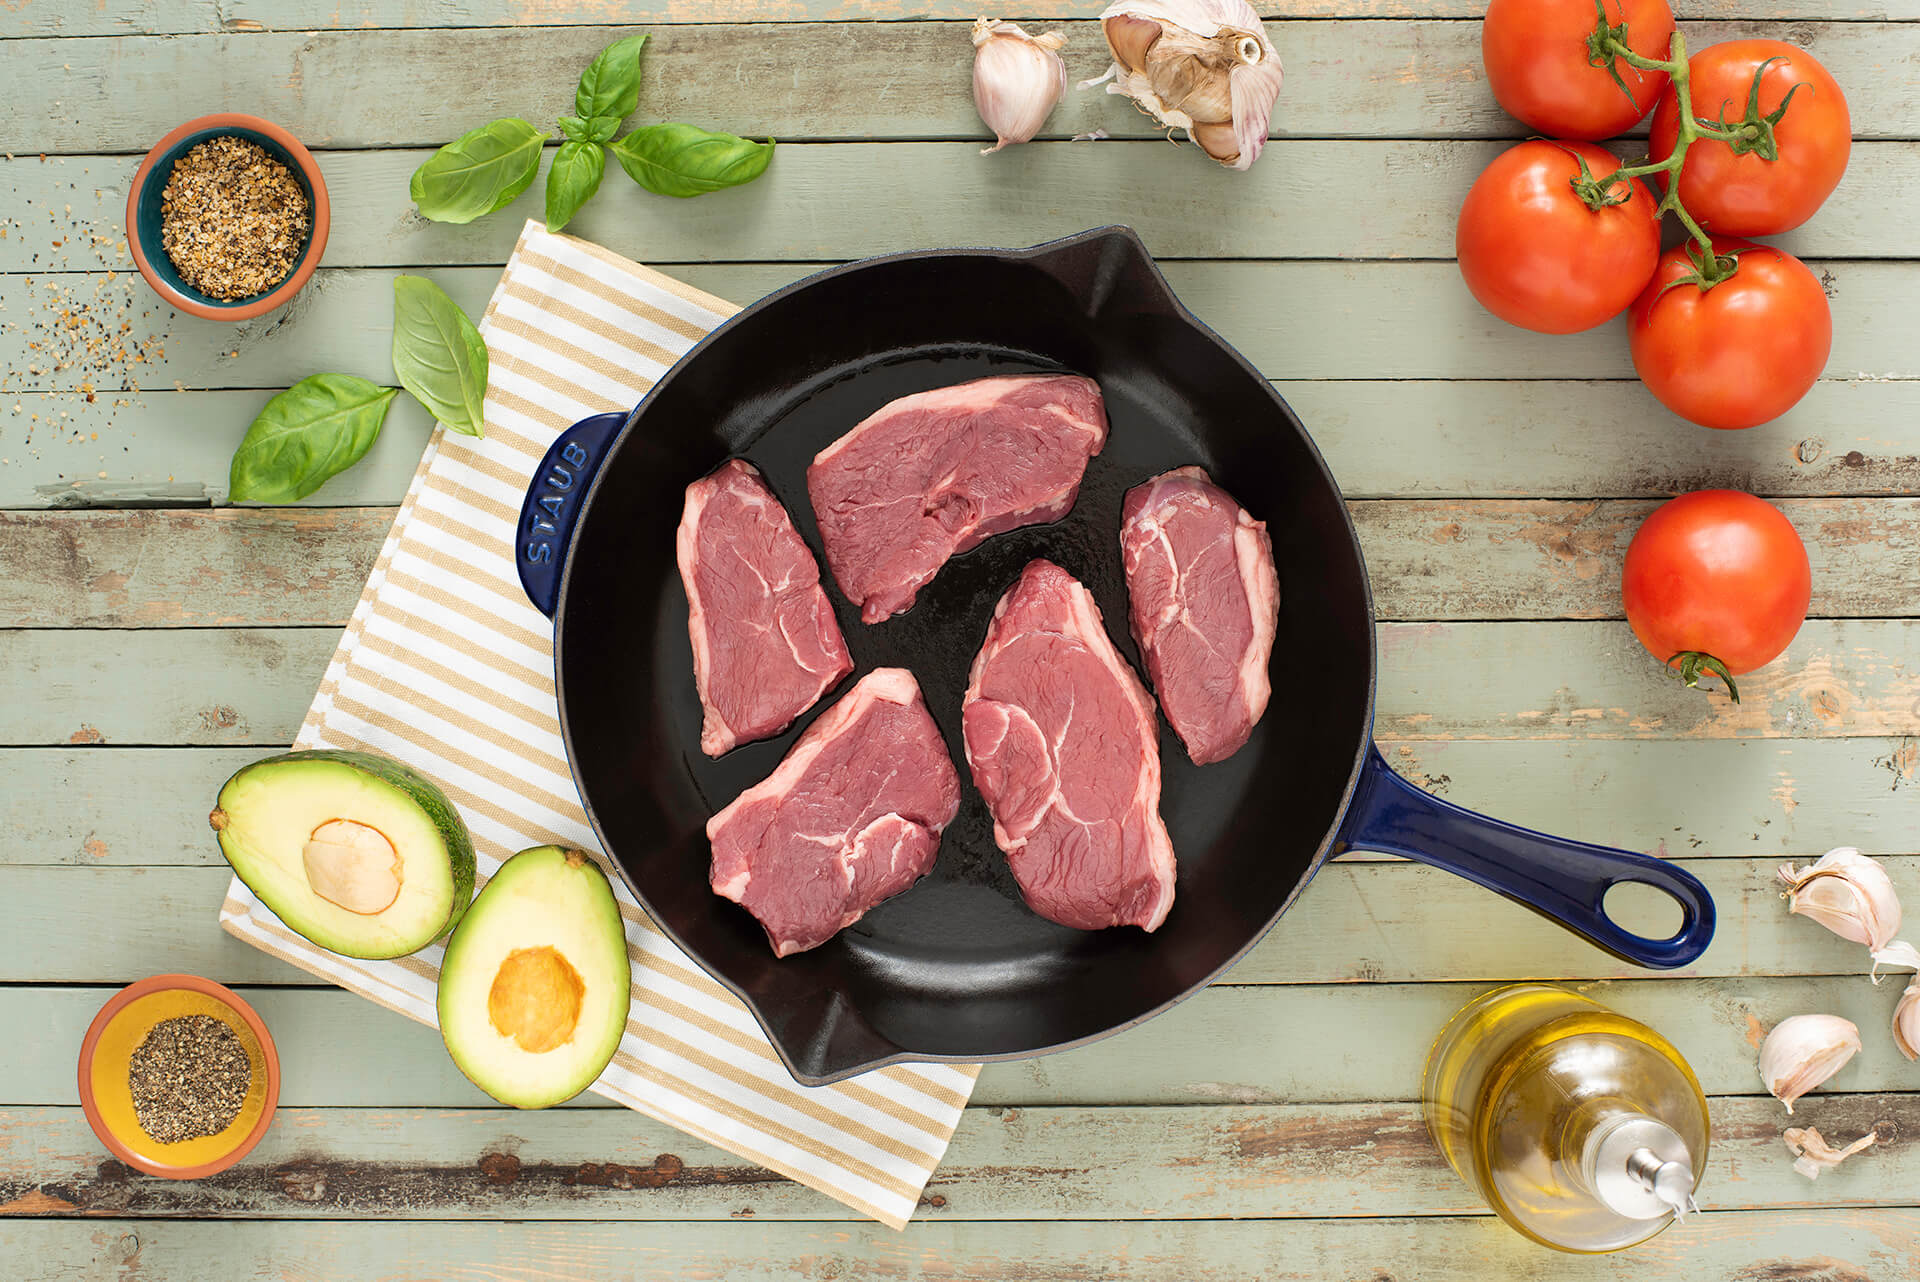 Lamb is a great source of healthy fats and protein on a keto diet.